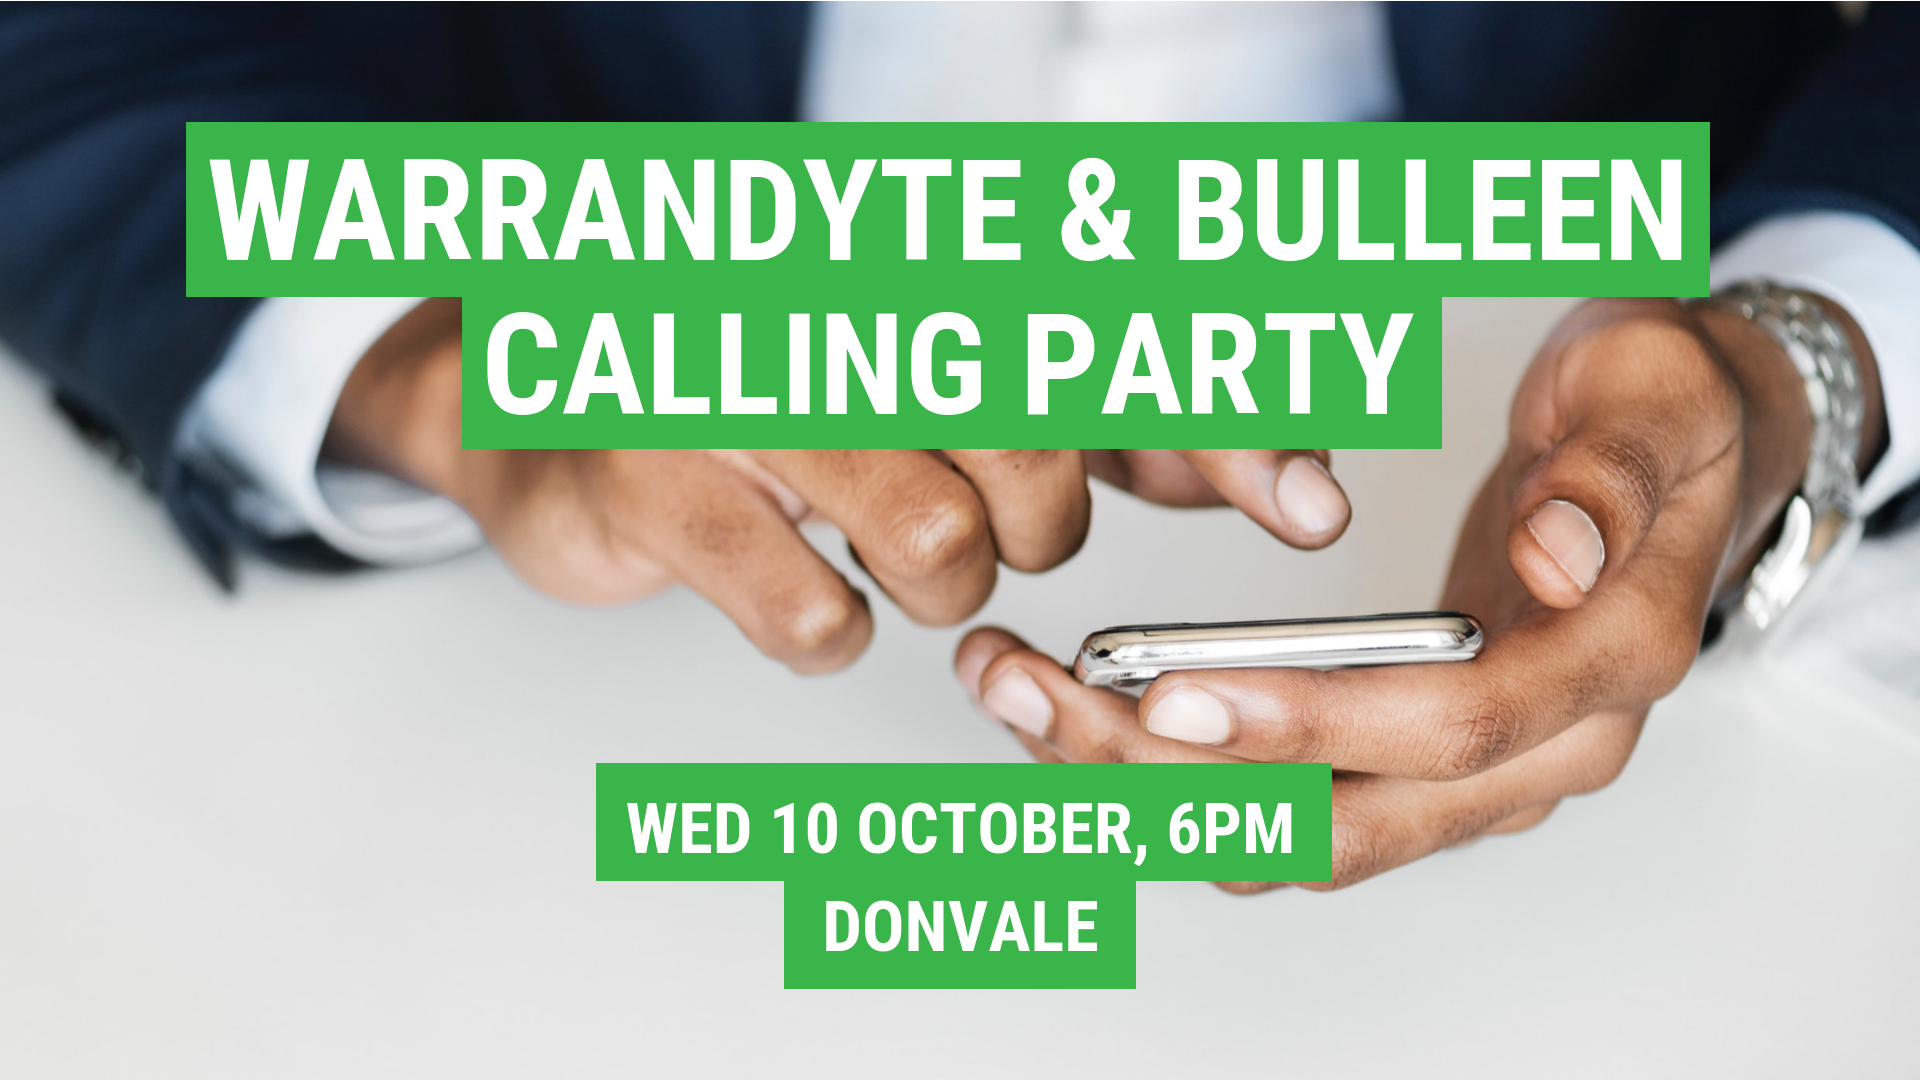 Warrandyte & Bulleen Calling Party 11 Sep 2018, 6pm